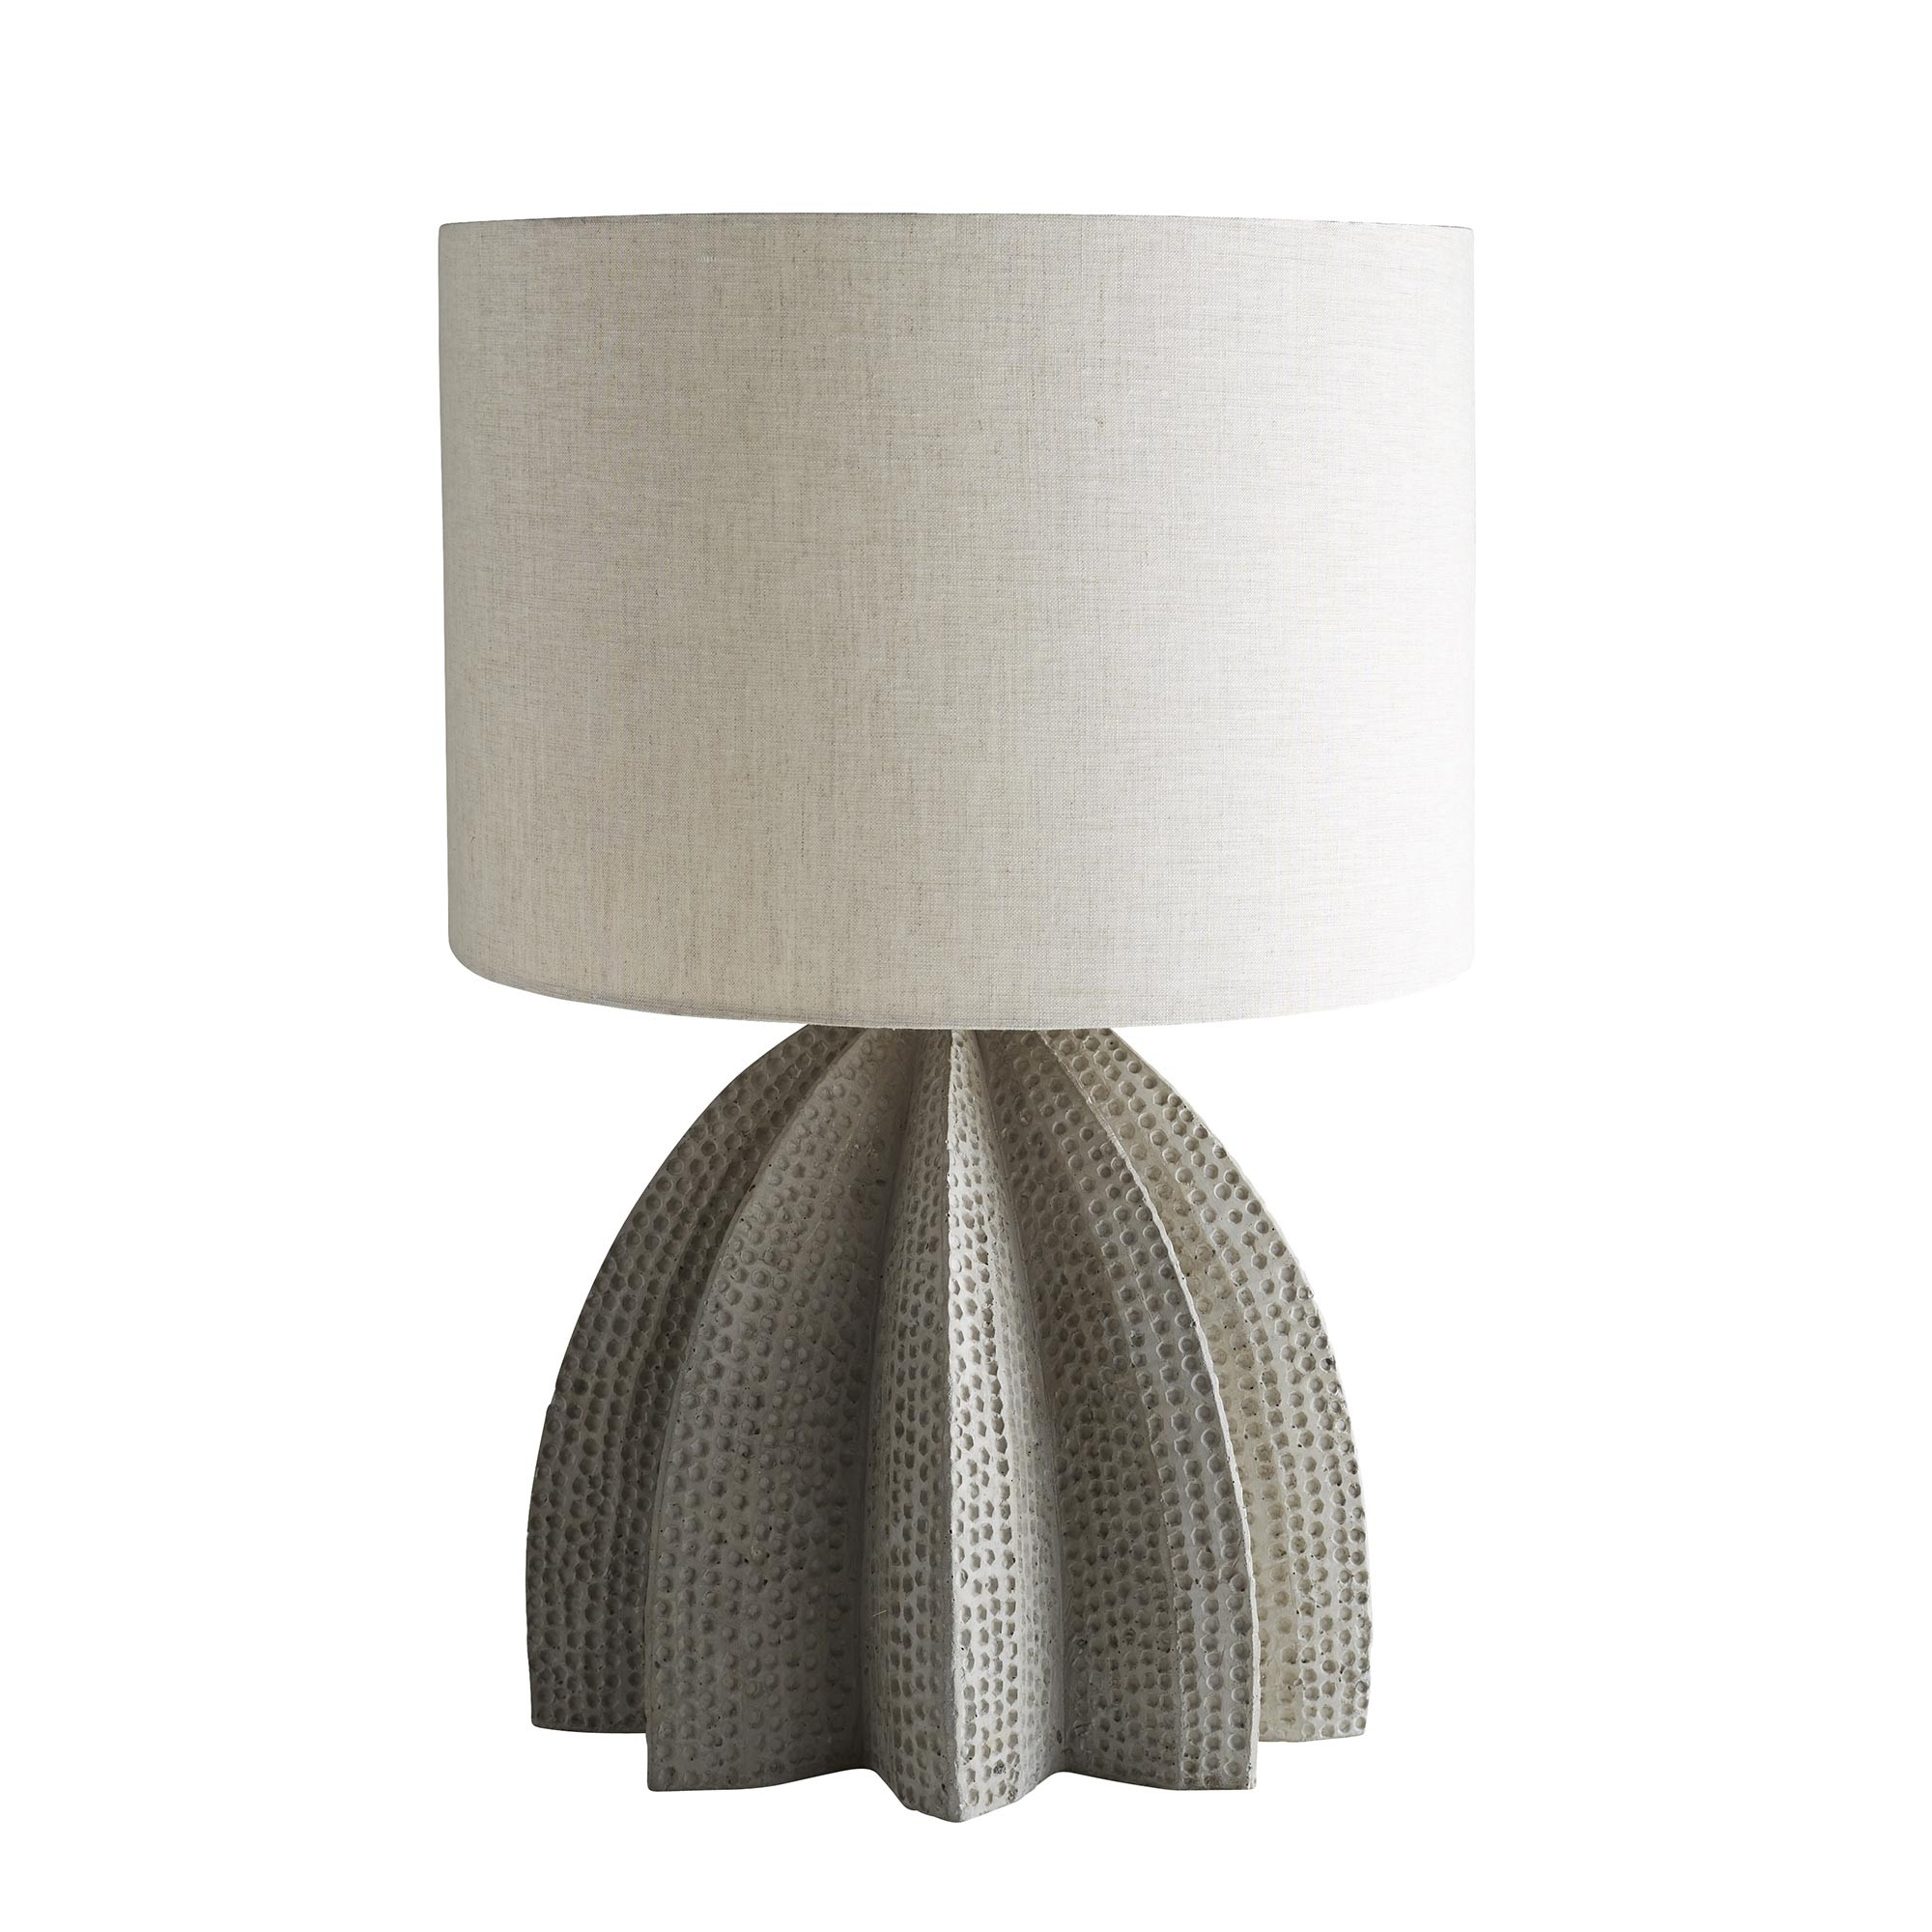 Pulp Home - Lorenzo Lamp. Dimensional and textured concrete table lamp with linen shade